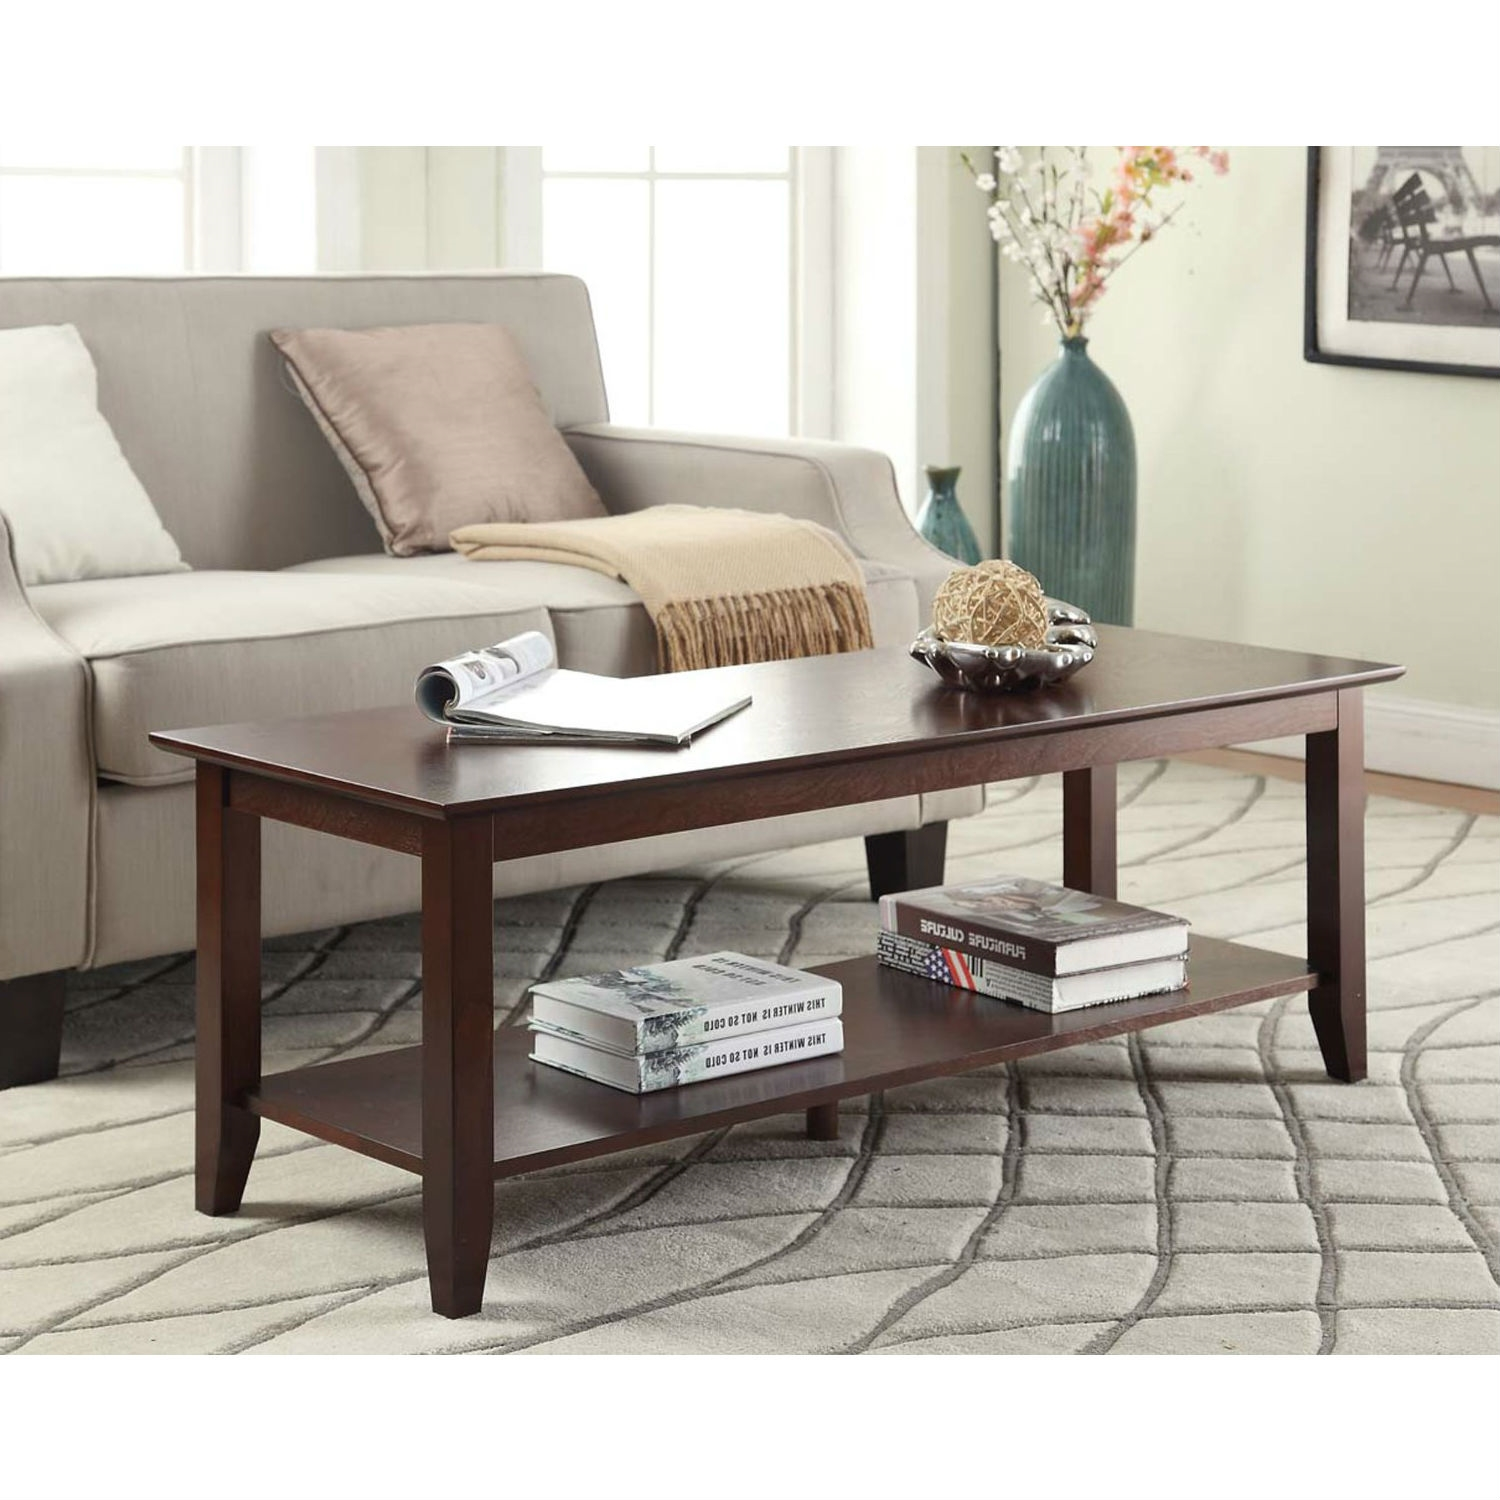 Expresso Coffee Table.Espresso Wood Grain Coffee Table With Bottom Shelf